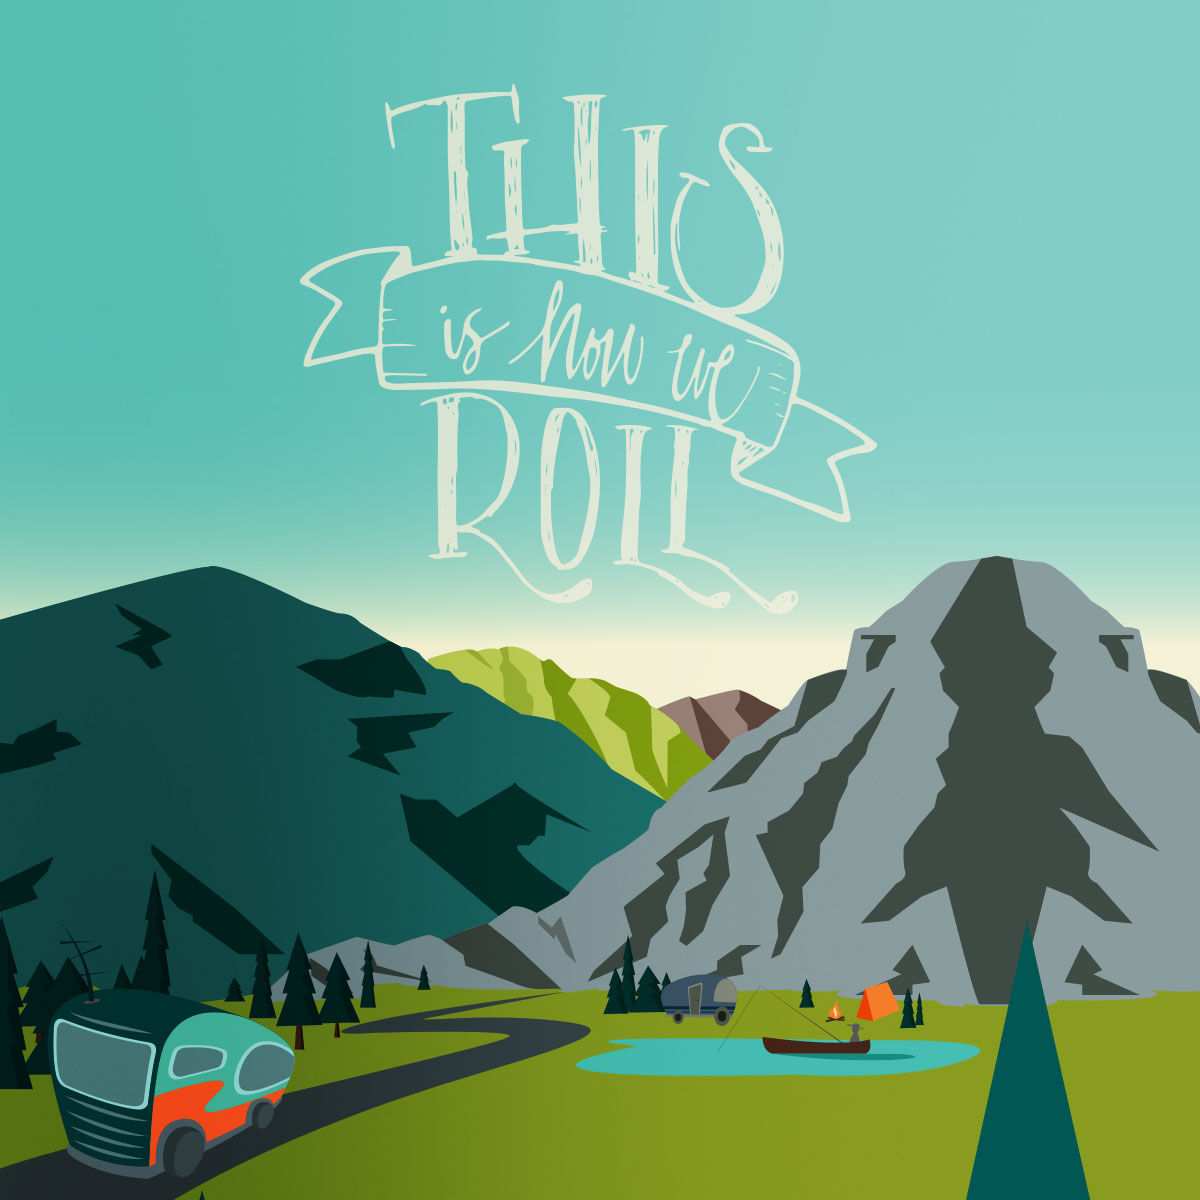 Illustration of an RV driving down a rode in the mountains – This is how we roll